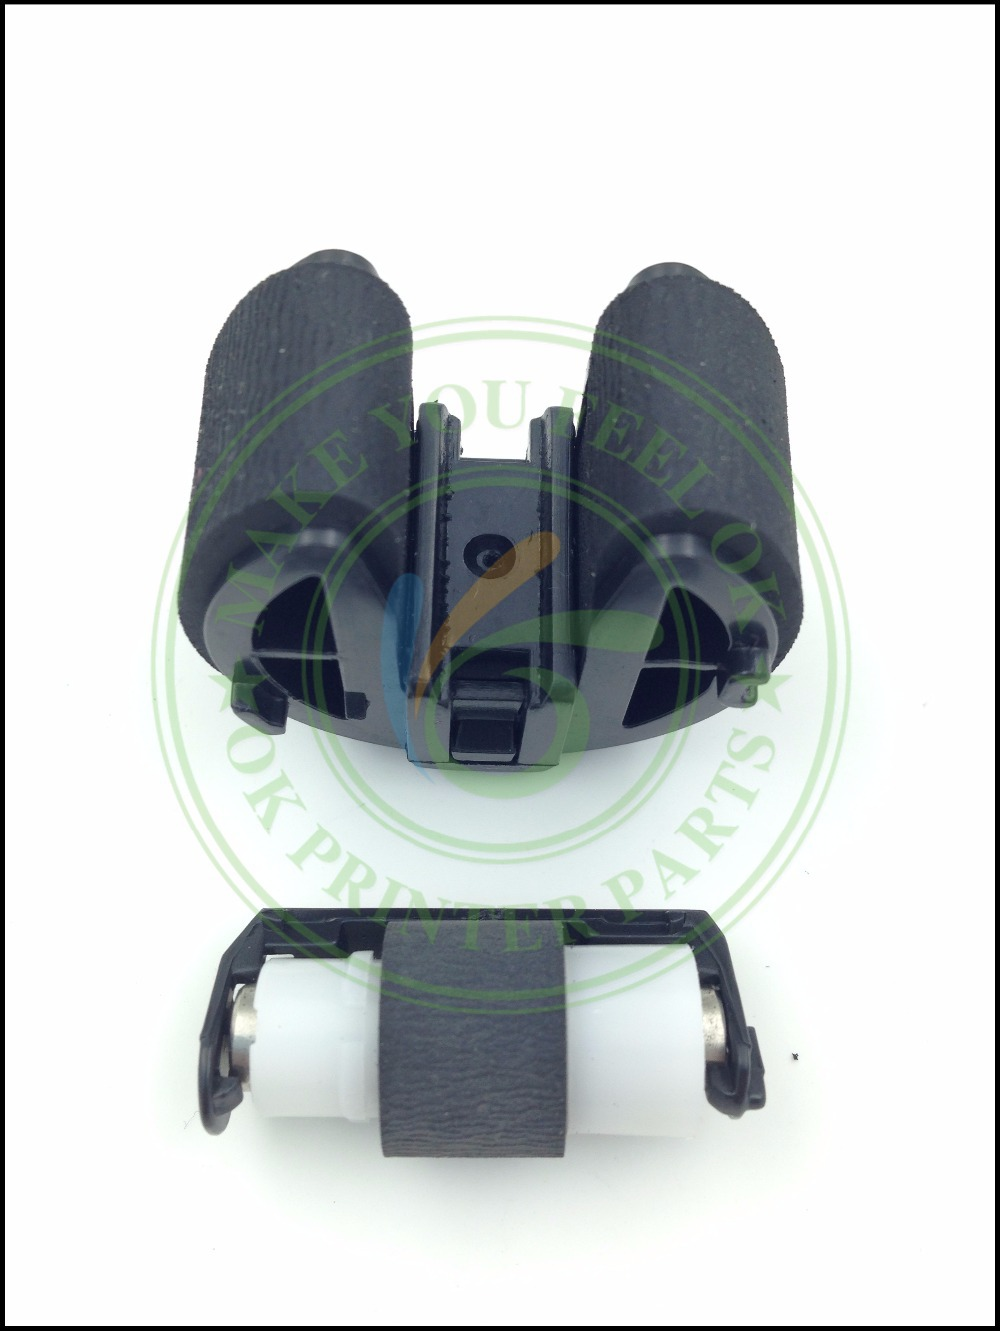 Image 2 - 5X CC430 67901 RM1 4425 RM1 8765 RM1 4426 Pickup Roller for HP CM1312 CP1215 CP1515 CP1518 CM1415 CP1525 CP2025 CM2320 M251 M351pickup roller assemblyroller assemblypickup roller -